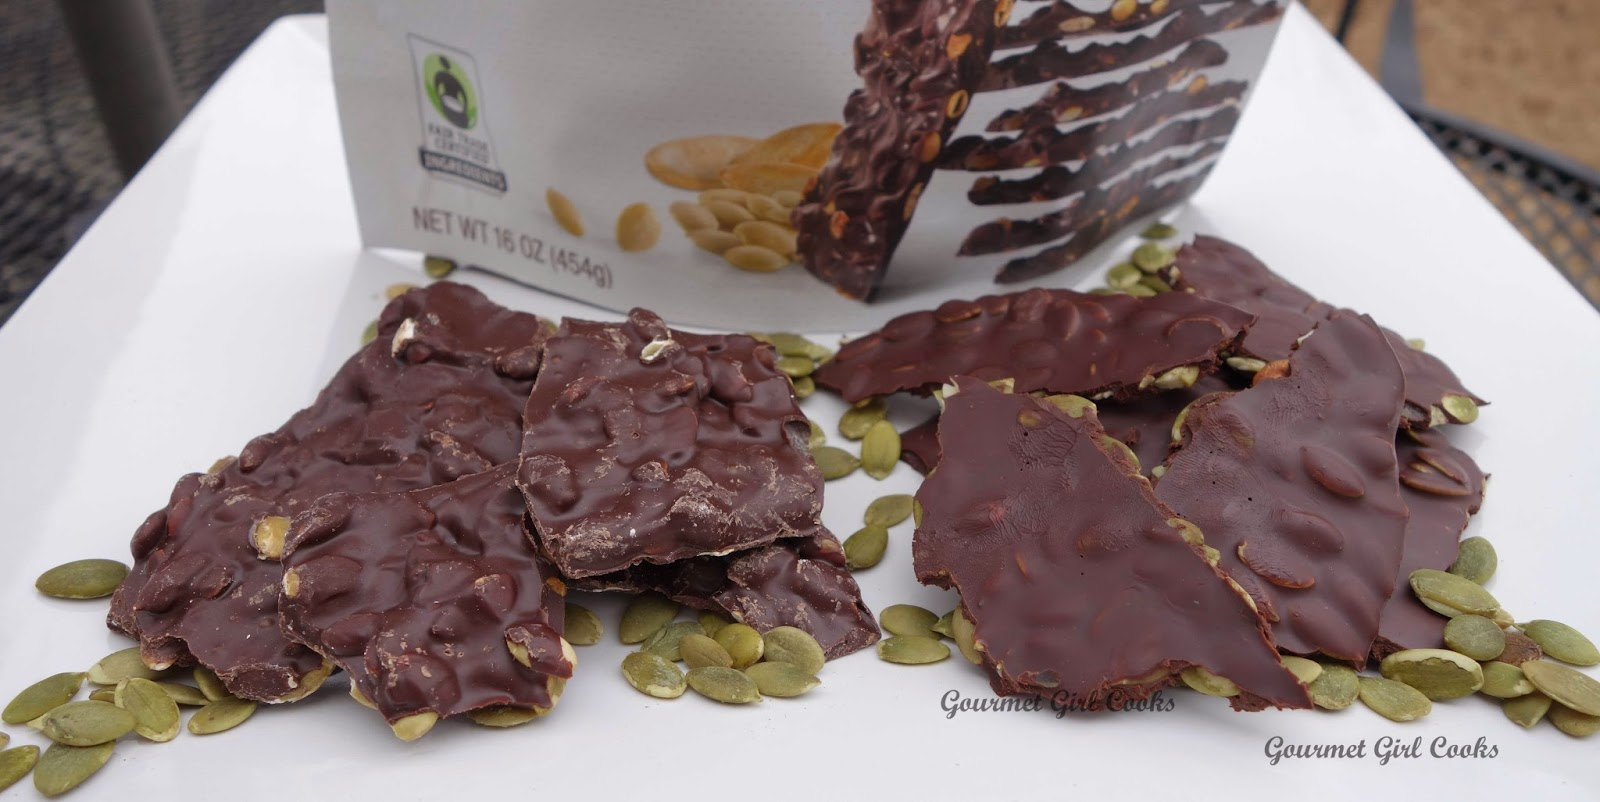 To make the bark thicker like that on the left, allow chocolate to ...